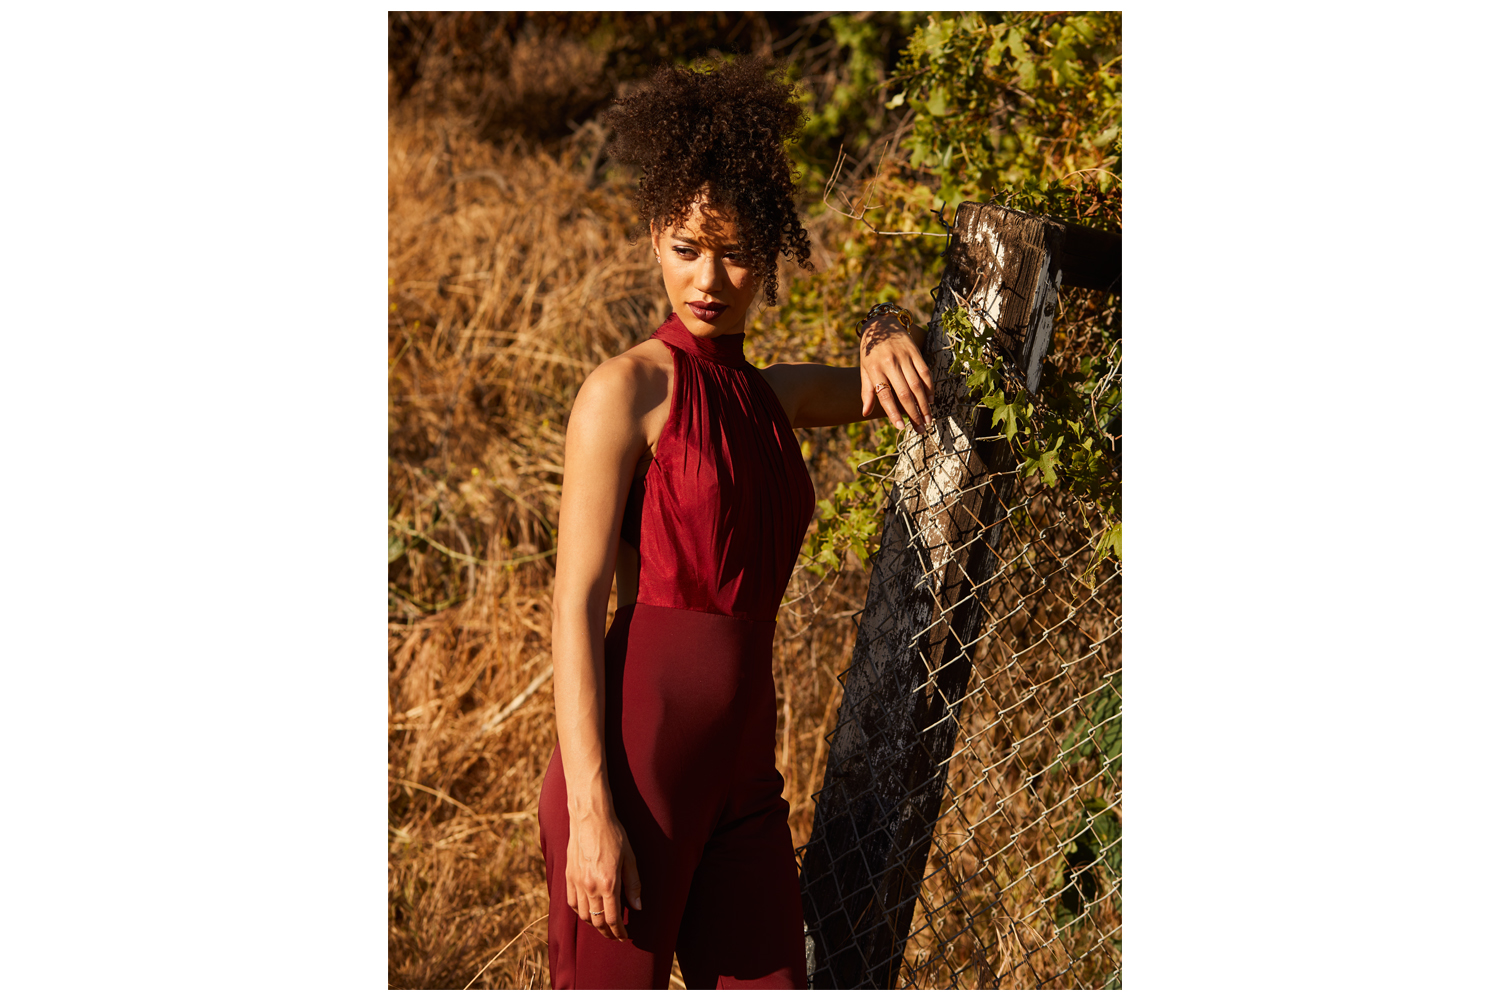 Jasmin Savoy Brown of HBO's The Leftovers. Brad Torchia is an LA-based photographer.